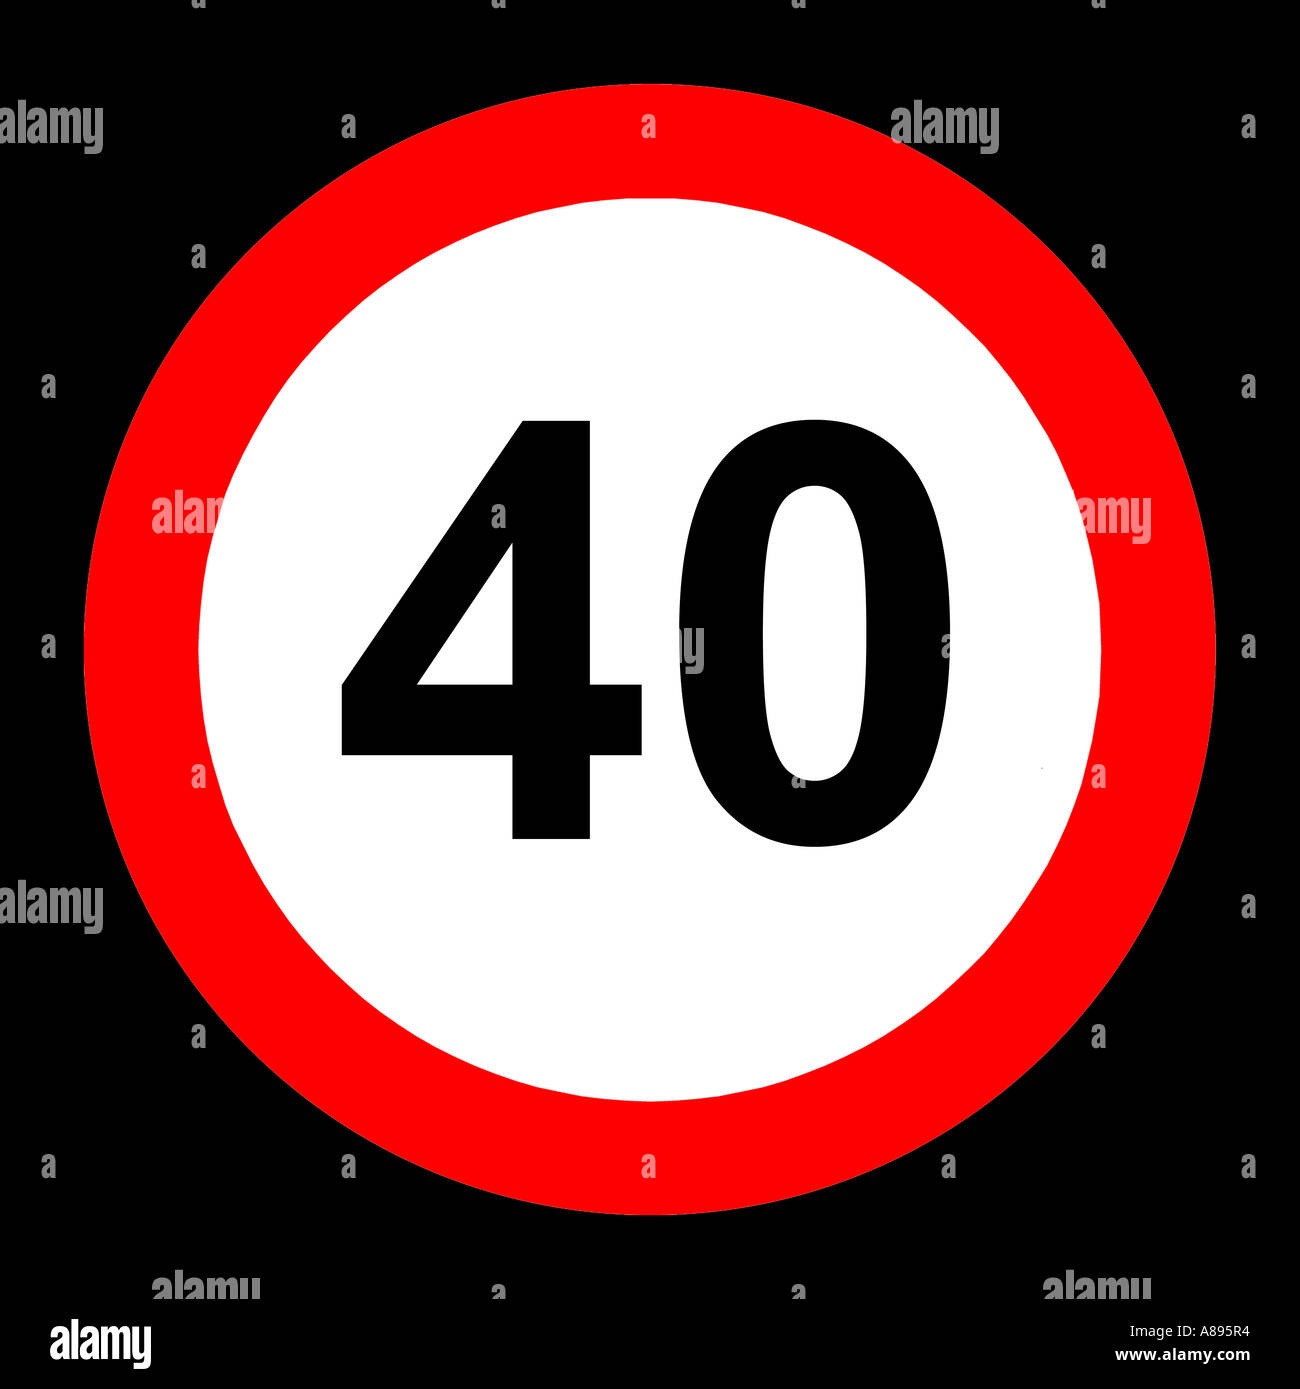 Forty (40) miles per hour speed limit road sign on black background - Stock Image